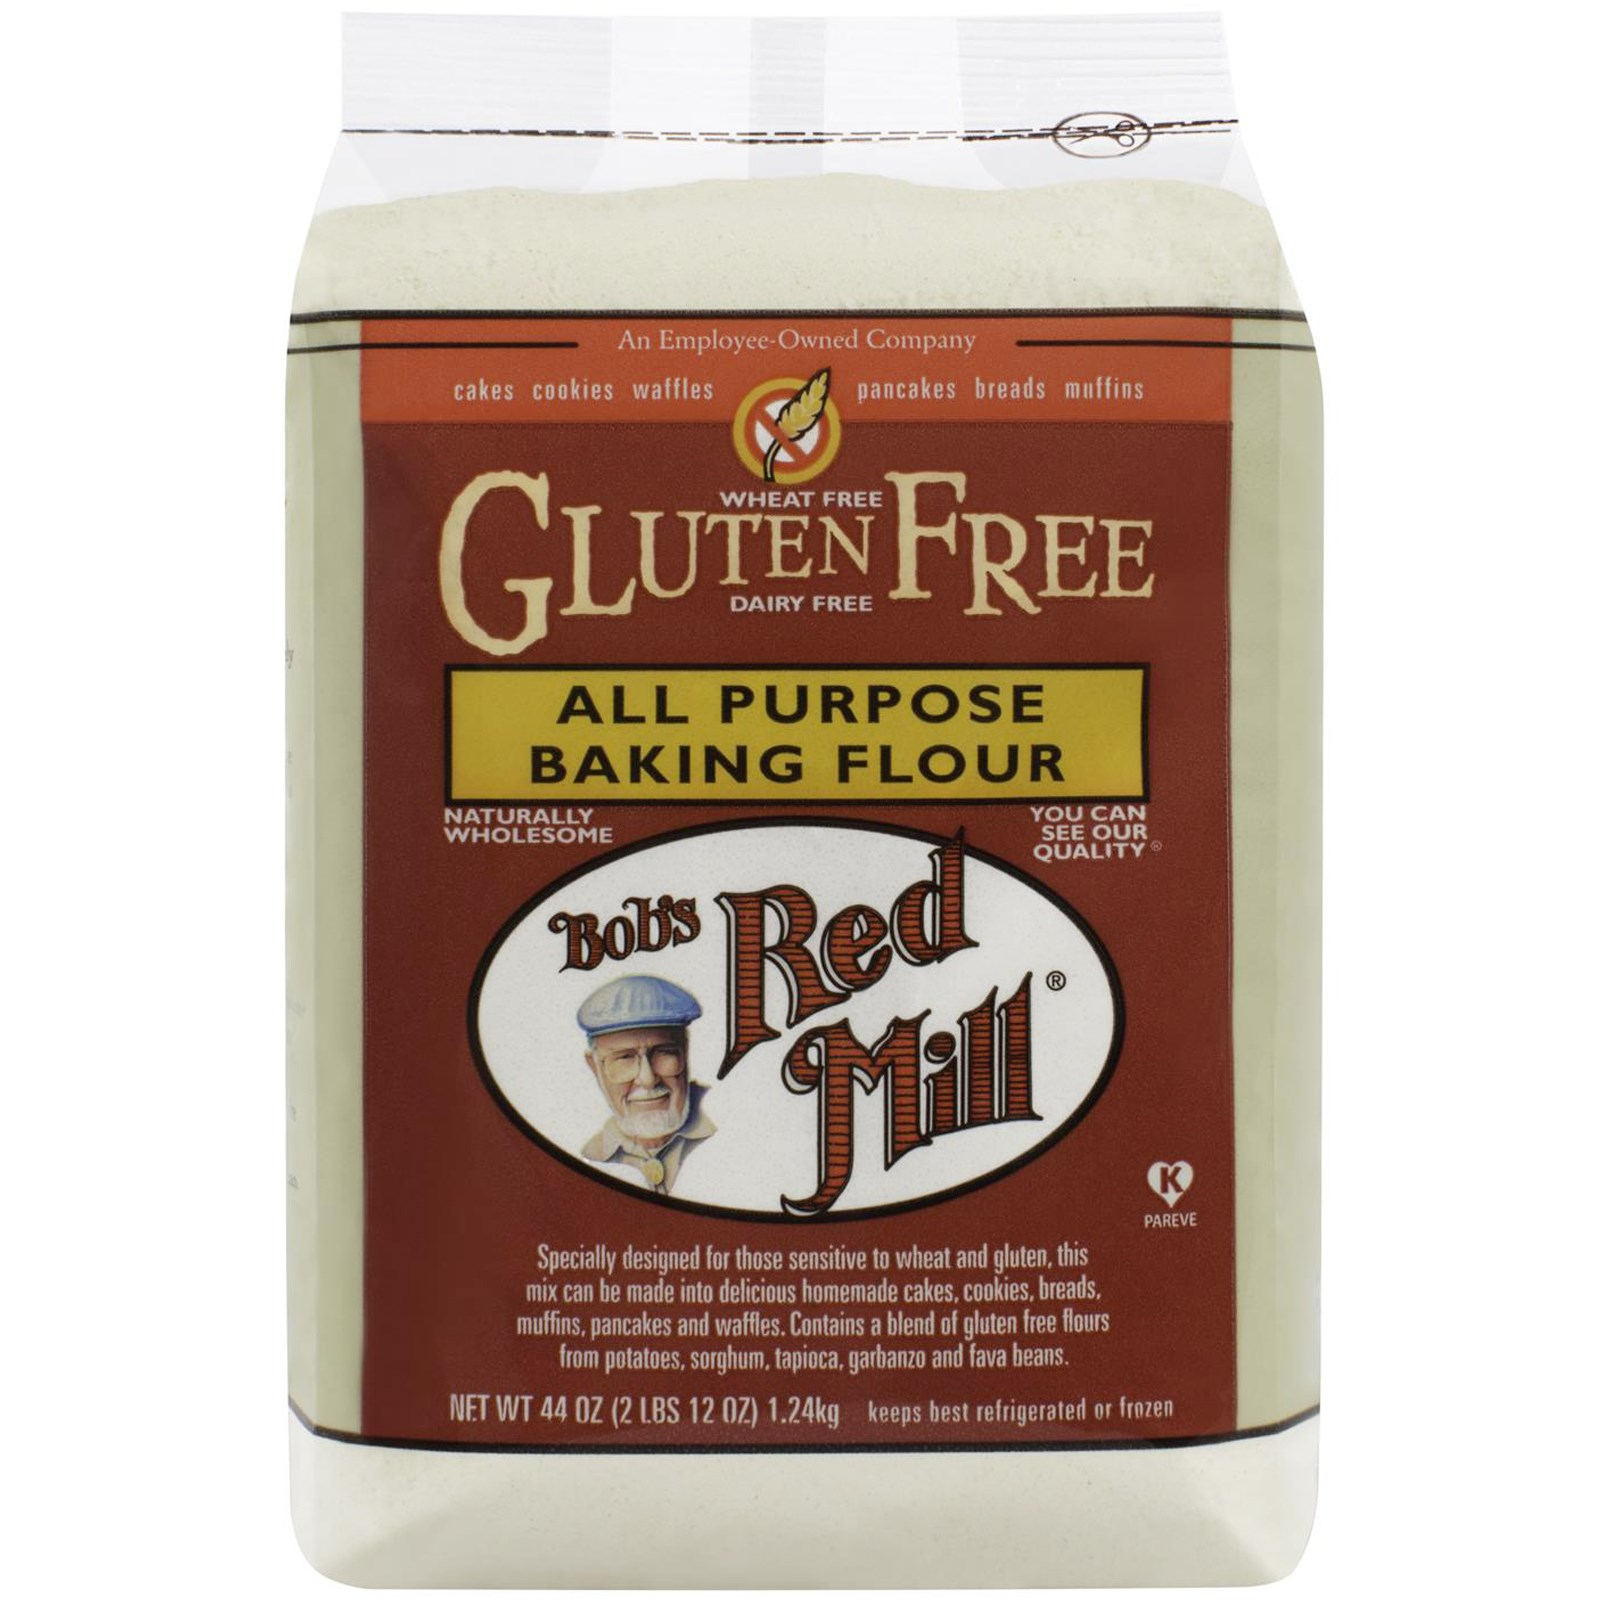 Bob's Red Mill, All Purpose Baking Flour, Gluten Free, 44 oz (pack of 2)